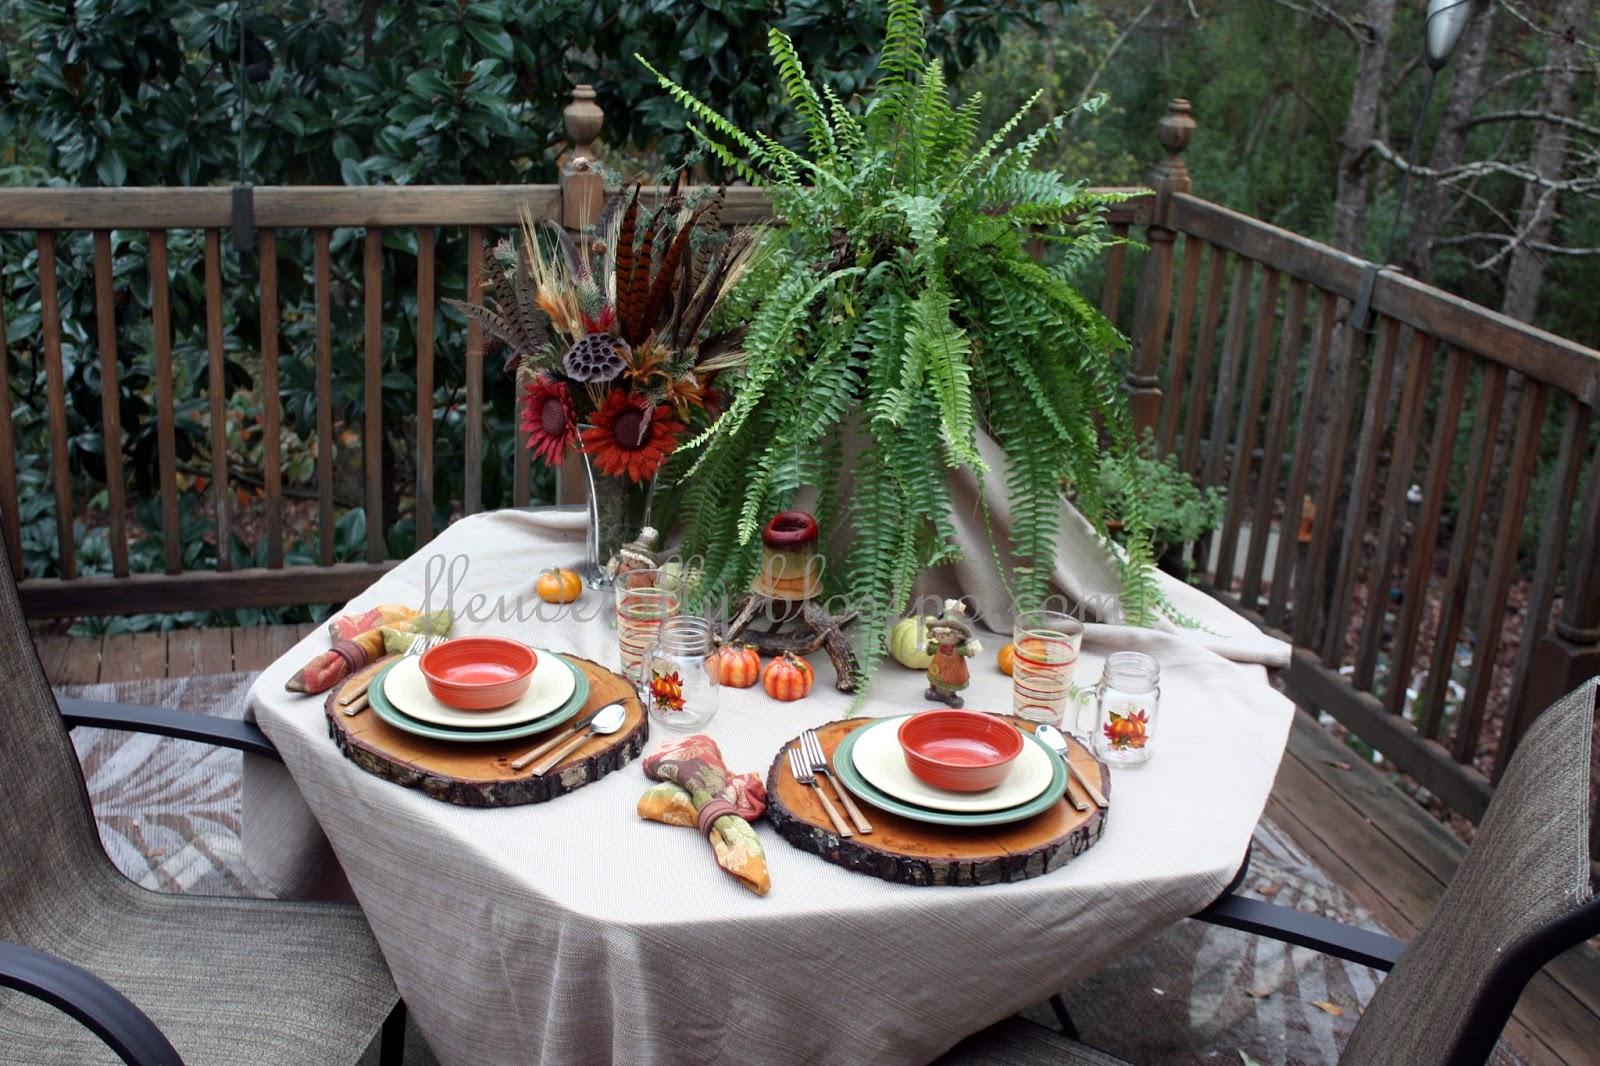 I thought you might enjoy a few pictures of our brunch table from this morning. A few weeks ago a friend shared a picture of a lovely table setting on a ... & Fleur de Lolly: Outdoor Autumn Brunch Table Setting